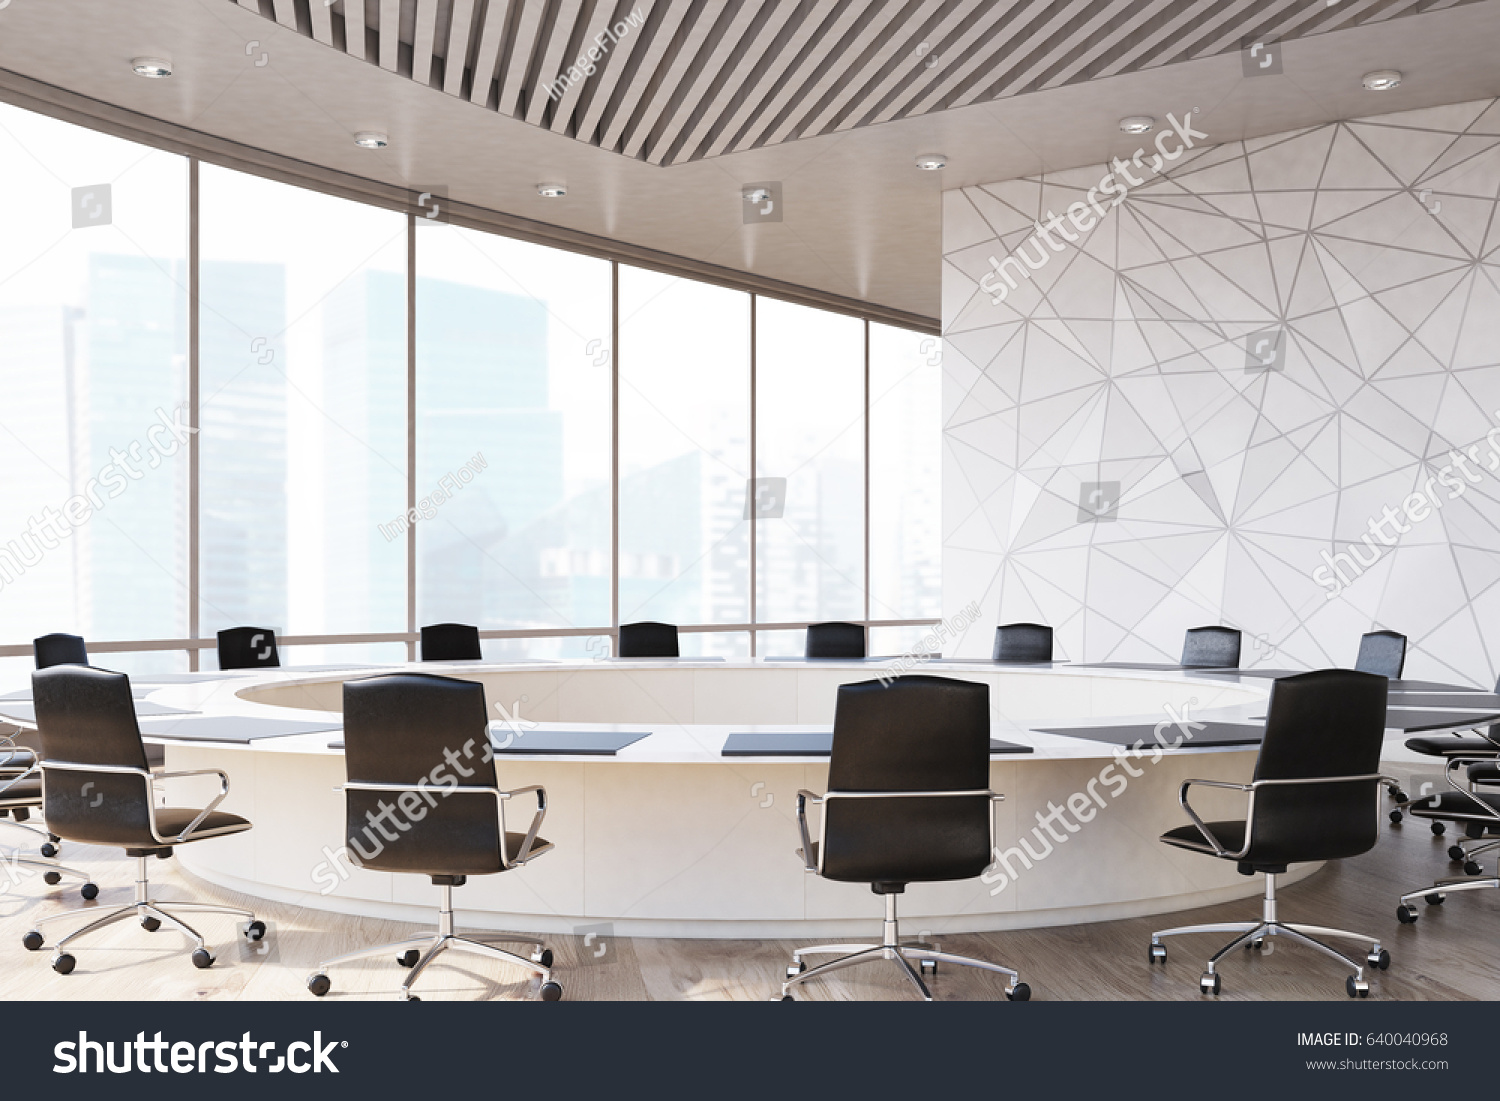 Conference Room Interior Round Table Black Stock Illustration - Black conference room table